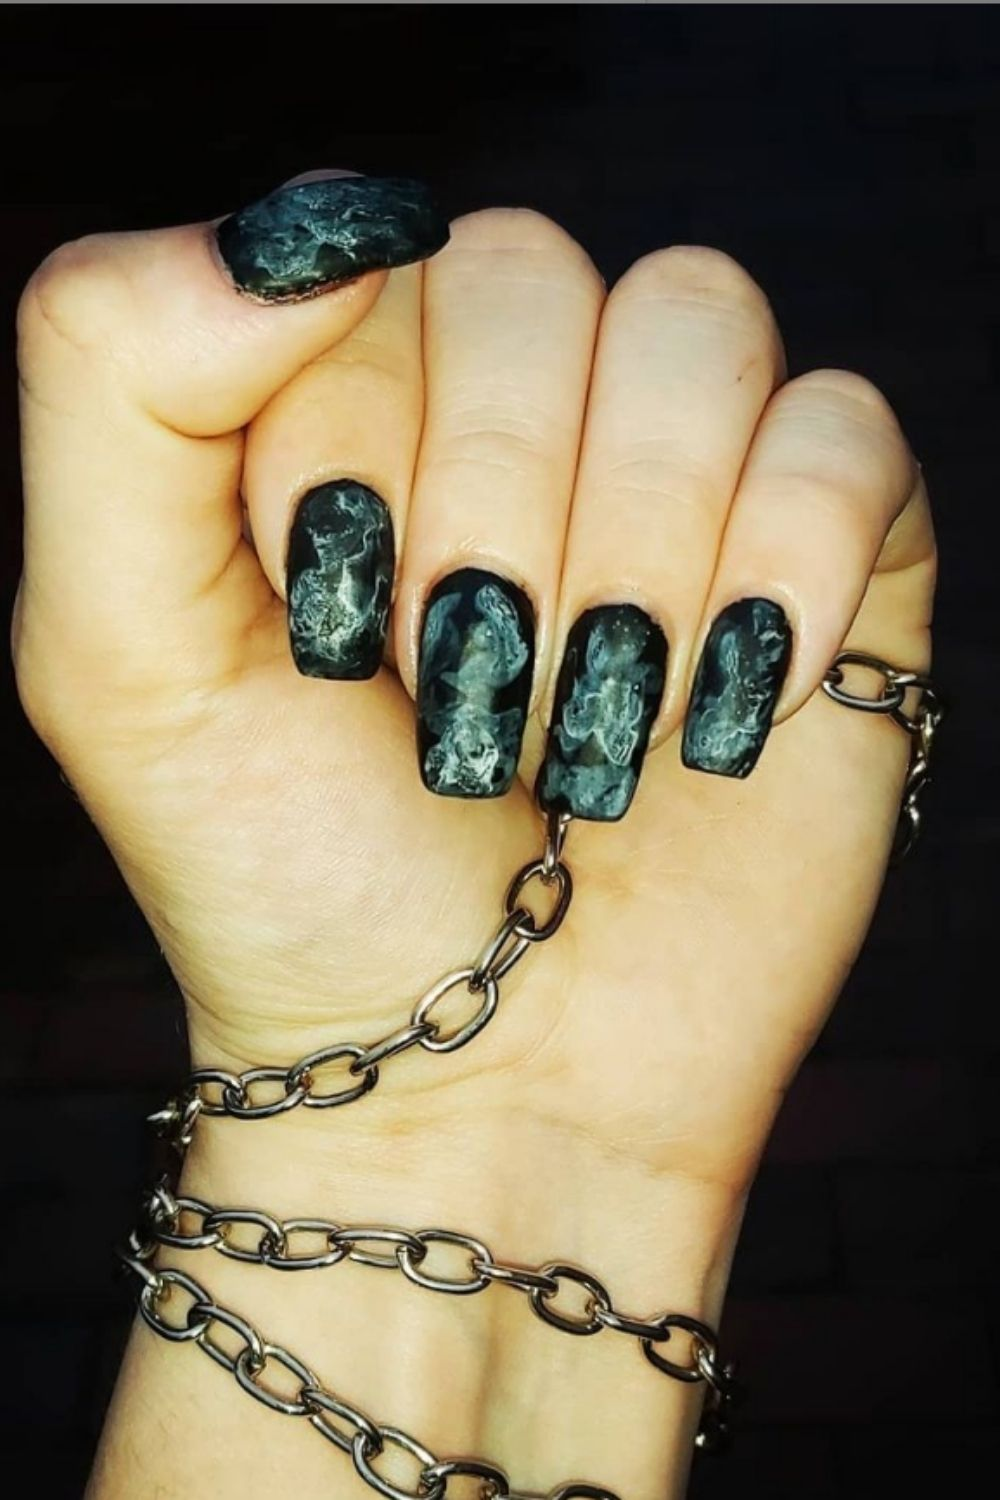 Galaxy nails | The Prettiest Instagram Trend of the Year